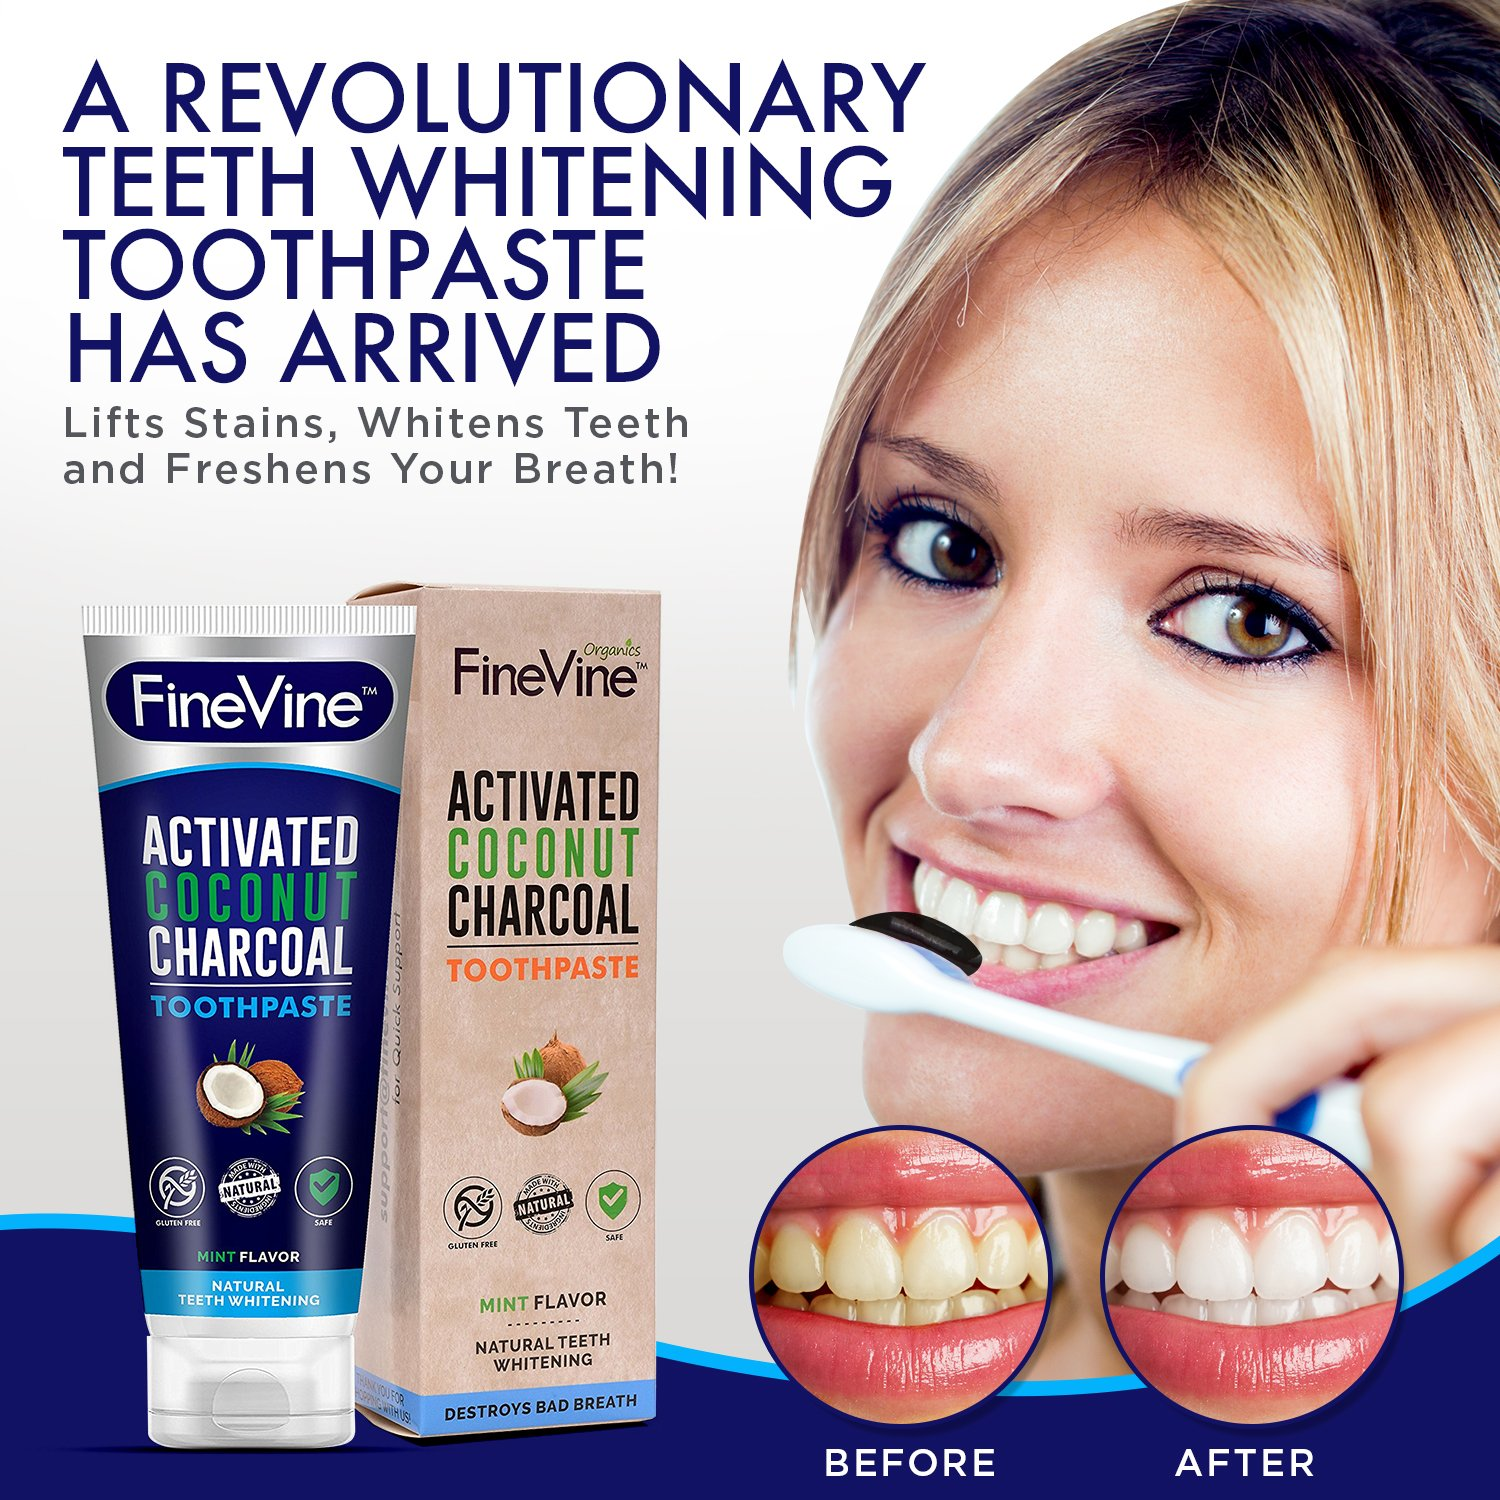 charcoal teeth whitening toothpaste made in usa whitens teeth naturally and removes bad. Black Bedroom Furniture Sets. Home Design Ideas